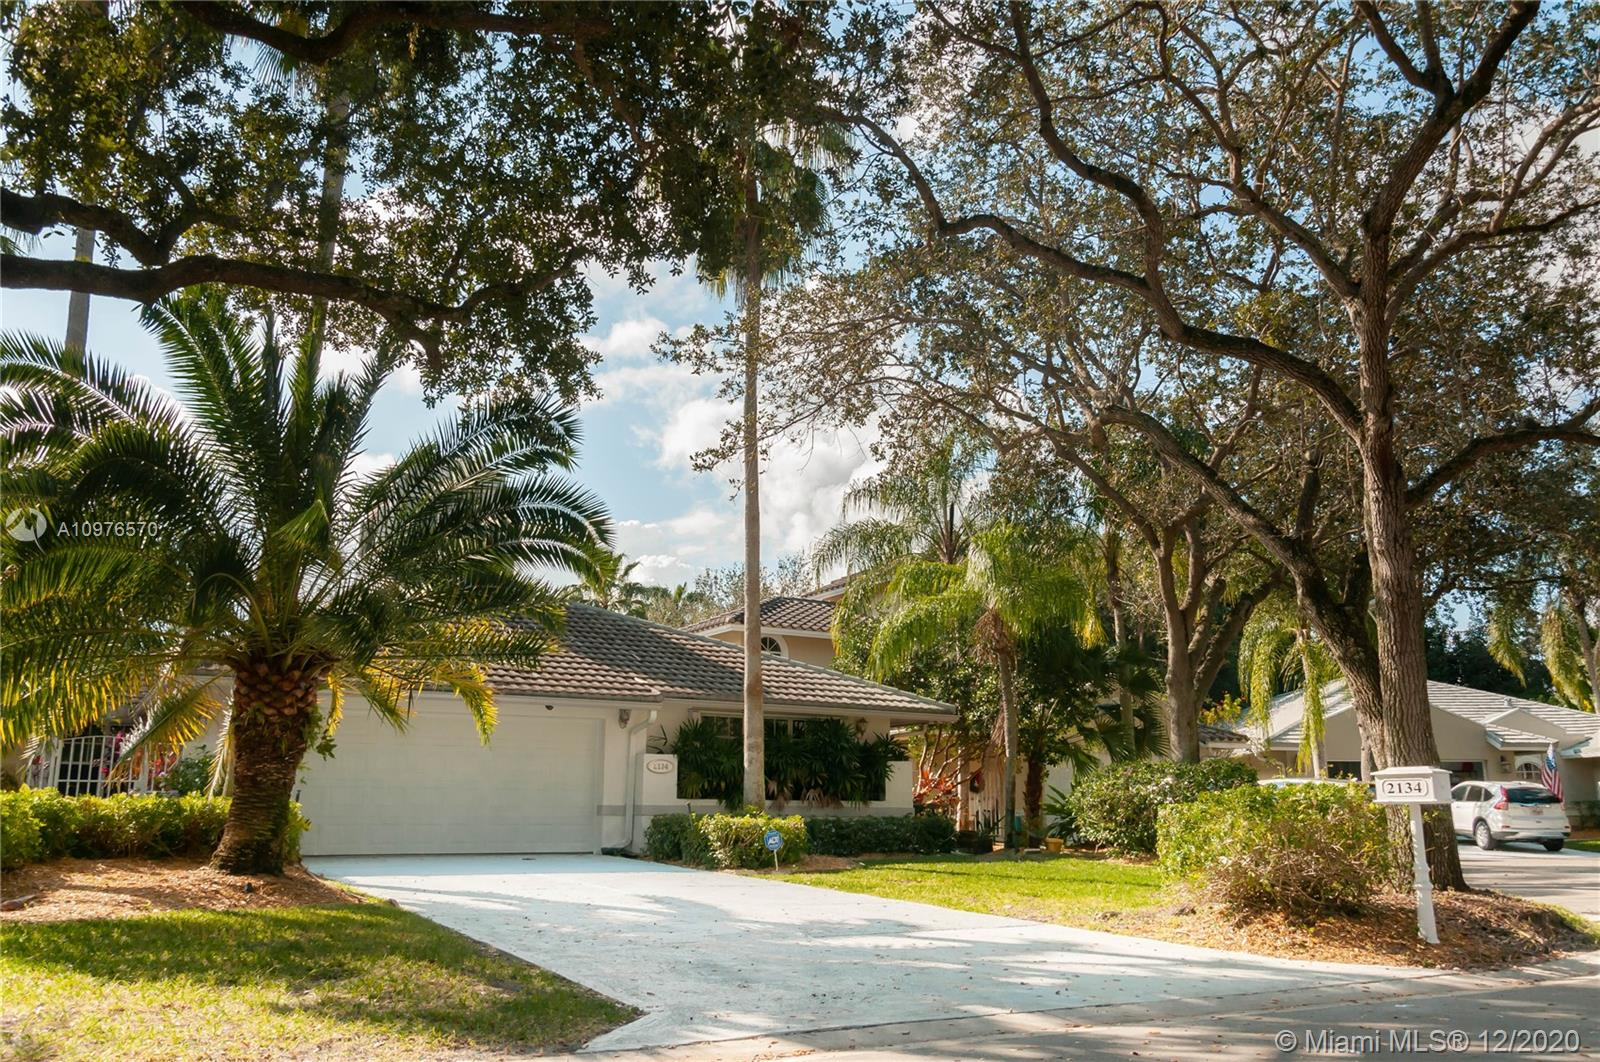 WONDERFUL AND IMPECCABLE KEPT ONE STORY SINGLE FAMILY HOME FEATURNG 3 BEDROOMS 2 FULL BATHS 2 CAR GARAGE, POOL WITH NEW ROBOT & SPA, LARGE SCREENED-IN PATIO, NESTLED ON A QUIET CUL-DE-SAC LOT IN CHARMING 75-HOME PRIVATE GATED COMMUNITY OF CAPTIVA CAY, TOP OF THE LINE SS APPLIANCES IT'S A CULINARY DREAM, STAINLESS DOUBLE SINK IN A CUSTOM ISLAND, WINE FRIDGE, WINE RACK, GRANITE COUNTER TOPS, FRENCH DOORS, PLANTATION WINDOW TREATMENTS, MASTER SUITE OVERLOOKING SPARKLING POOL AND LUSHLY LANDSCAPED PATIO, MASTERBATHROOM WITH DUAL SINK HIGH CEILINGS LAUNDRY ROOM WITH UTILITY SINK 2019 A/C UNIT FULL ACCORDION SHUTTERS EXTRA LONG DRIVEWAY SURROUNDING AREA OFFERS SHOPPING, RESTAURANTS, PARKS AND WALK/BIKE PATHS MAKE THIS LOVELY HOME YOURS DON'T WAIT AND CONTACT ME TODAY TO PREVIEW YOUR FUTURE HOME!